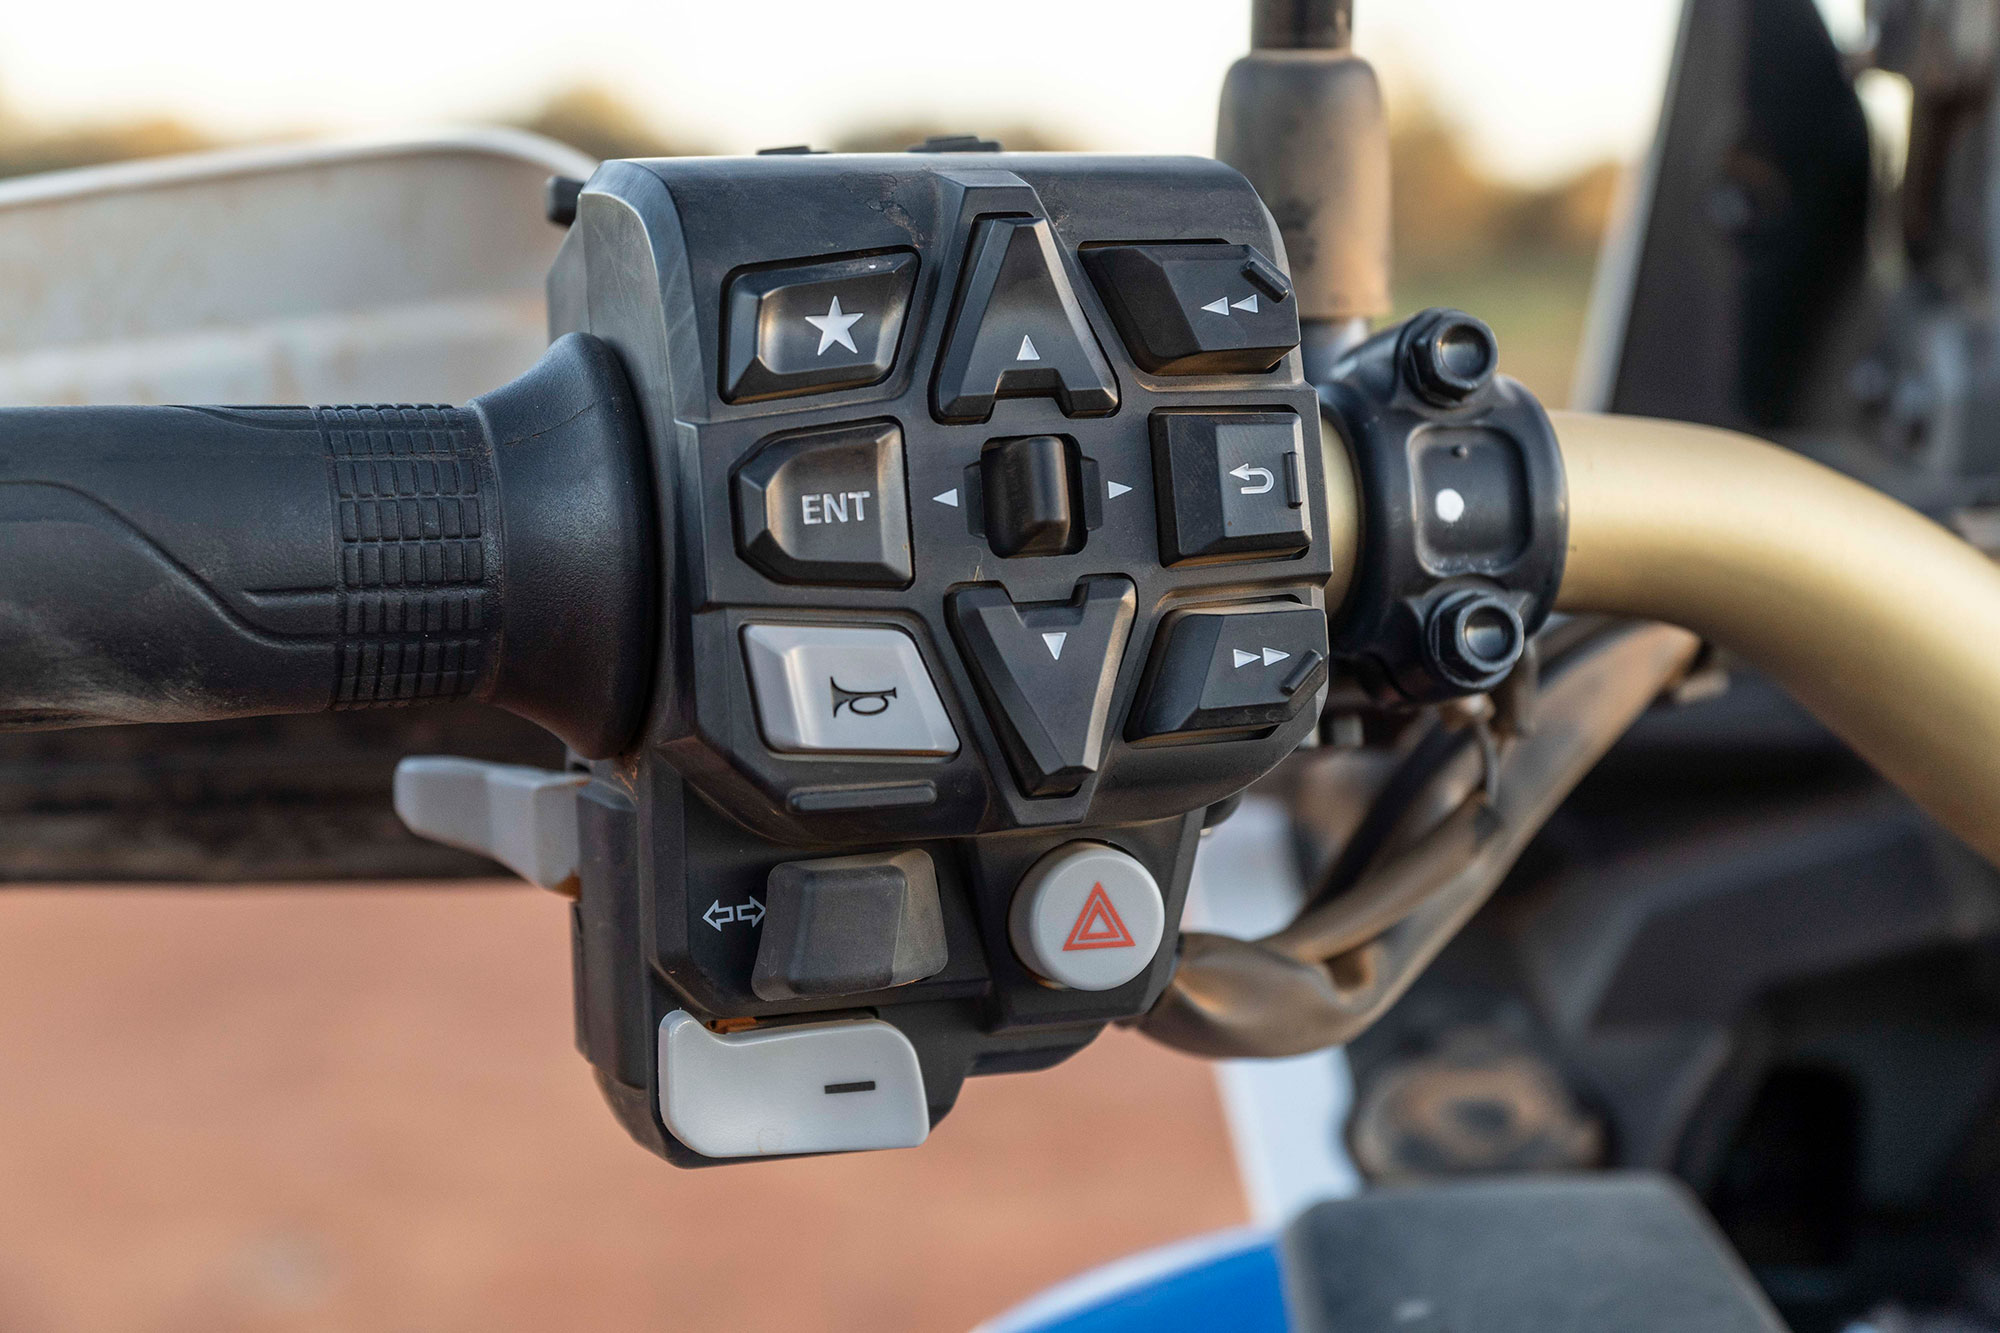 2020 Honda Africa Twin Ride Review – An outback adventure